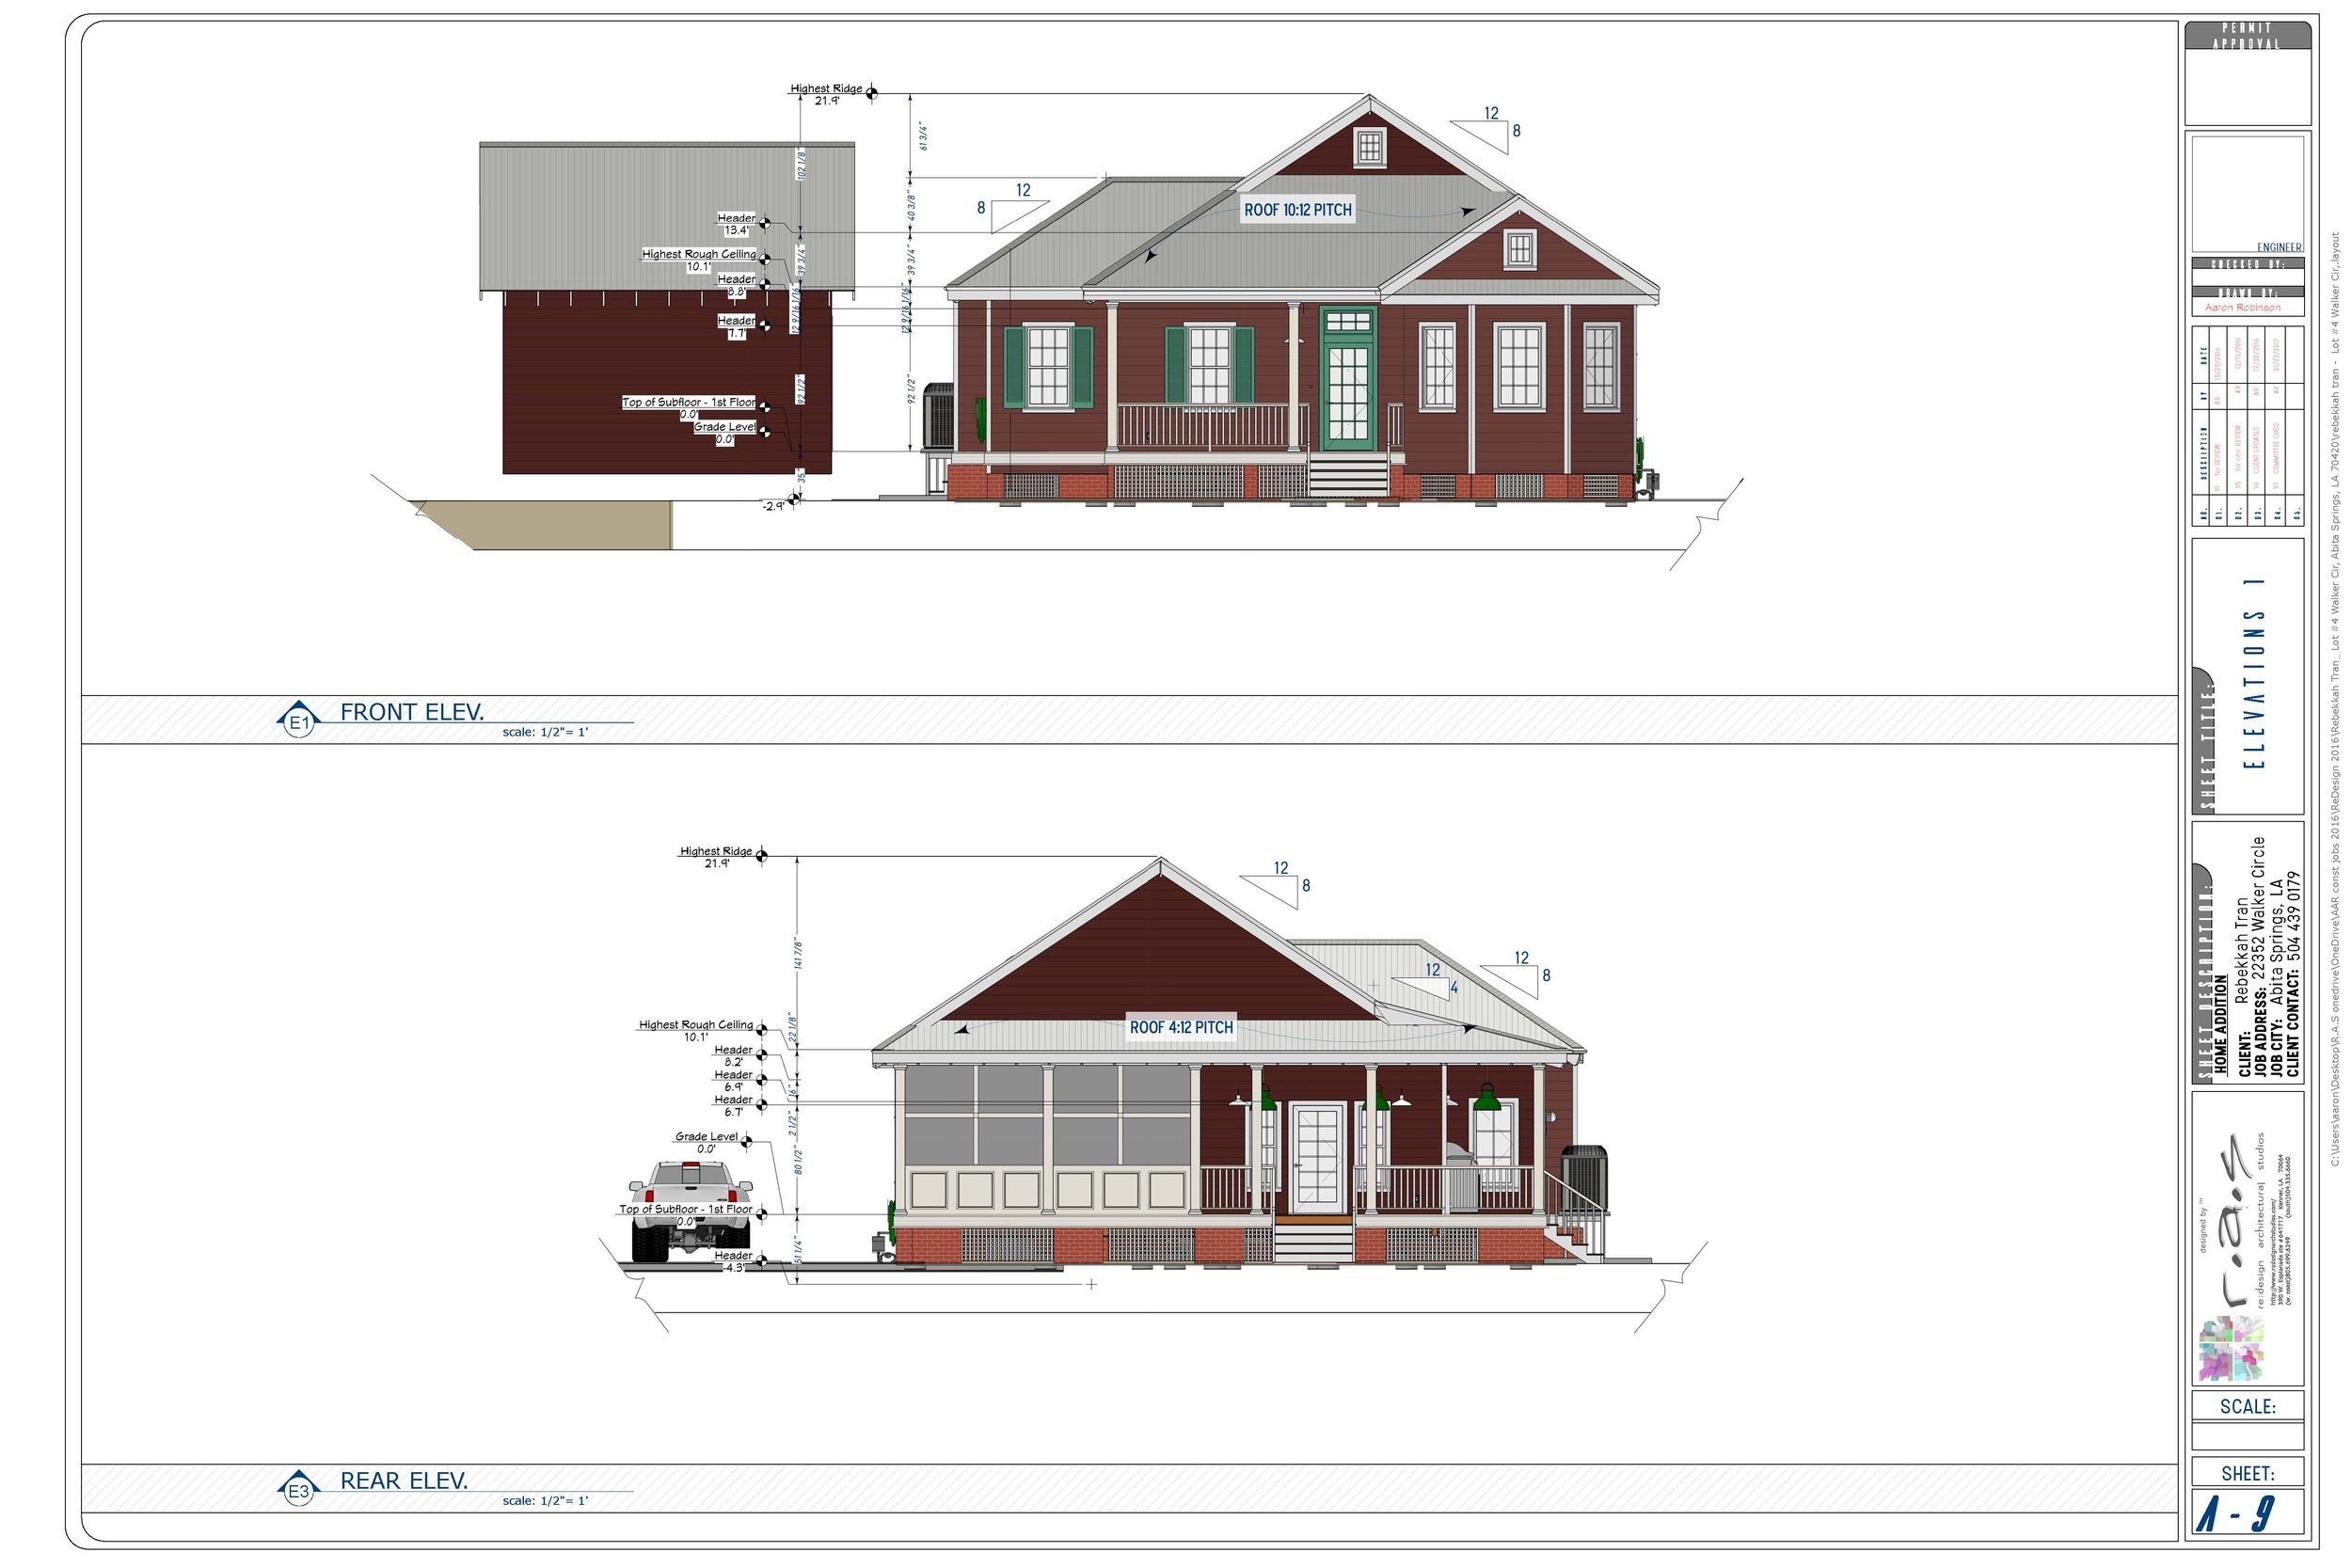 rebekkah Tran_ 22352 Walker Cir, final layout - V7  01232017_Page_09.jpg